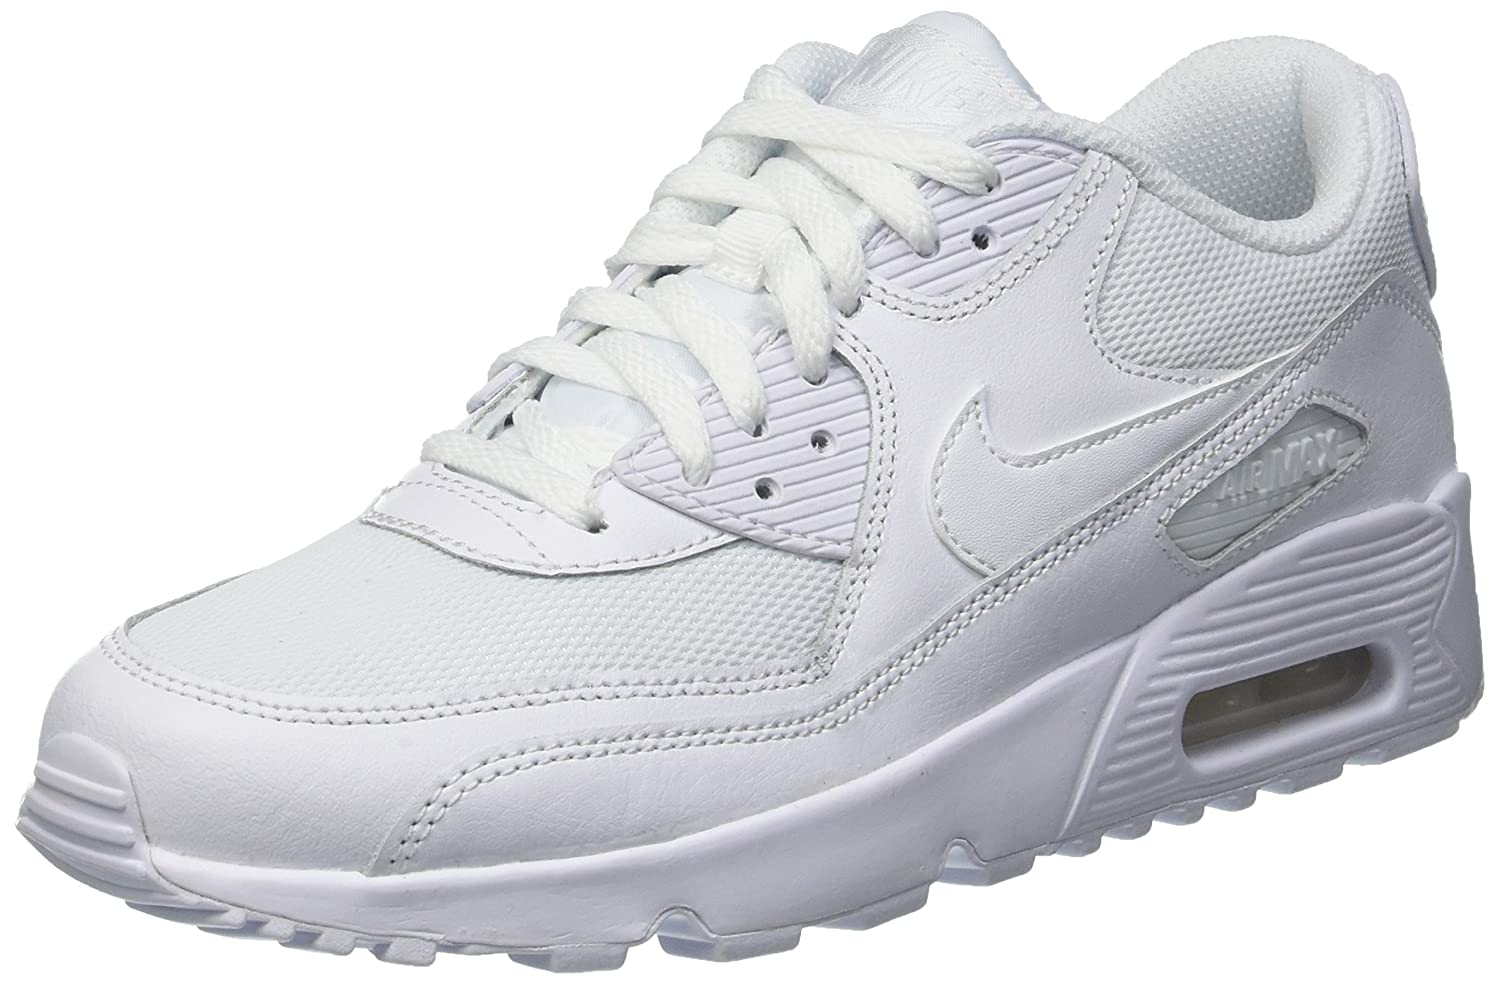 NIKE AIR MAX 90 MENS WHITE LEATHER MESH TRAINERS VARIOUS SIZES